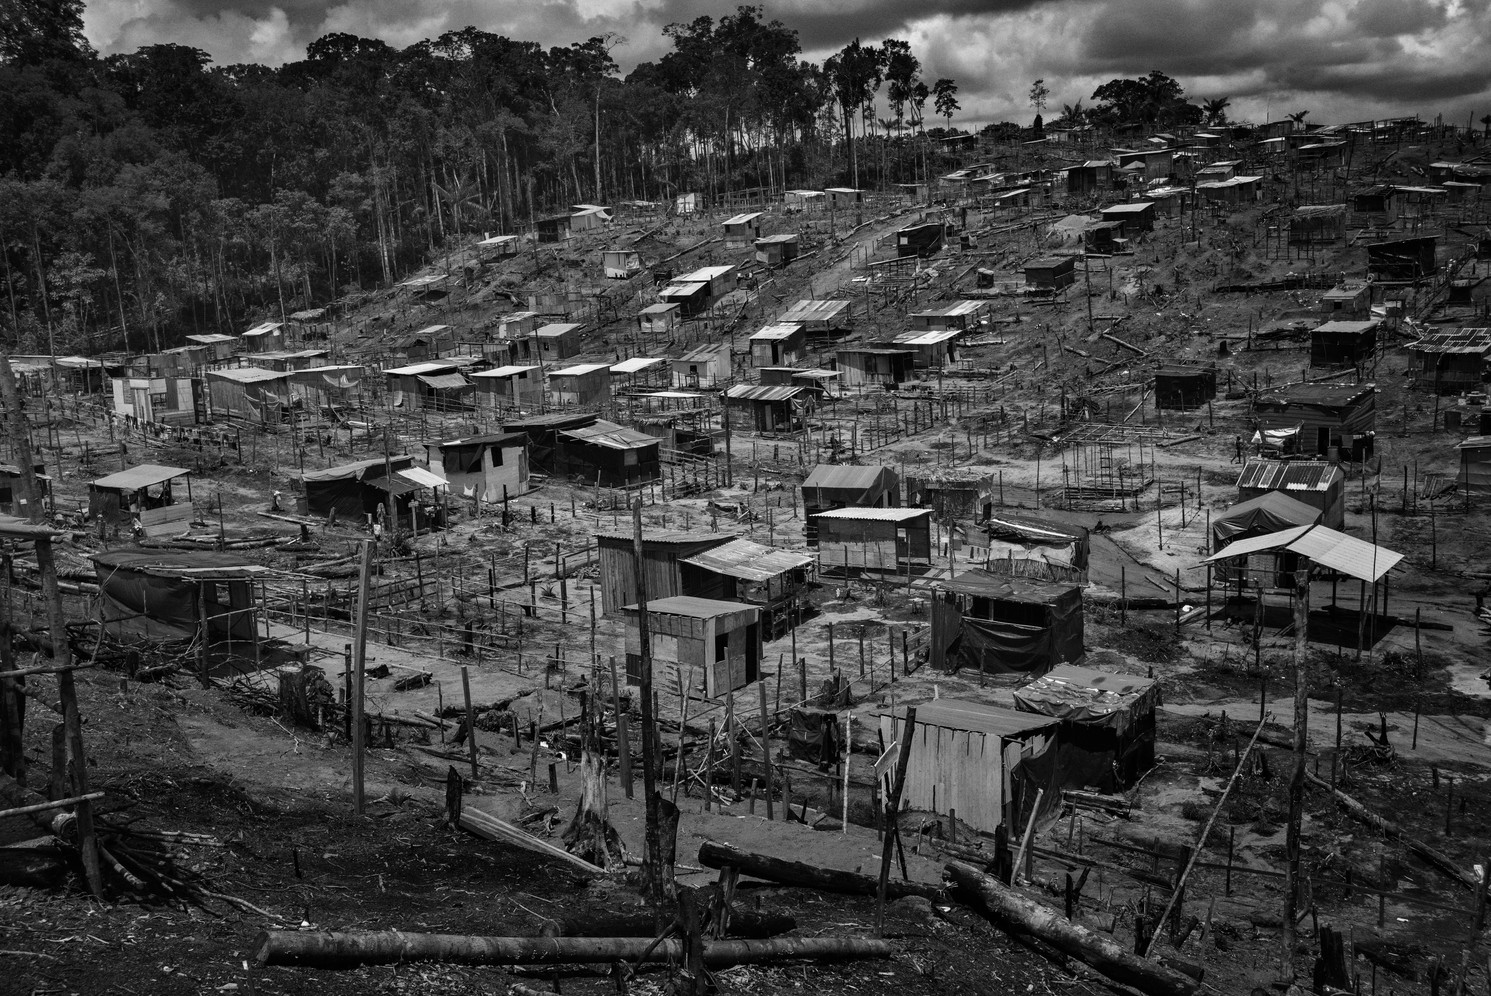 Hillside view of the Monte Horebe squatter's community in Manaus. The richest and most populous city of the Brazilian Amazon, every year, Manaus attracts thousands of migrants. Many are fleeing rural poverty and poor public services of isolated interior towns but the city has an enormous housing deficit and as a result, the poorest often end up living in shantytowns on the city's forested outskirts. Such communities are typically controlled by organized crime gangs and with no environmental oversight, cause deforestation and pollute local rivers.